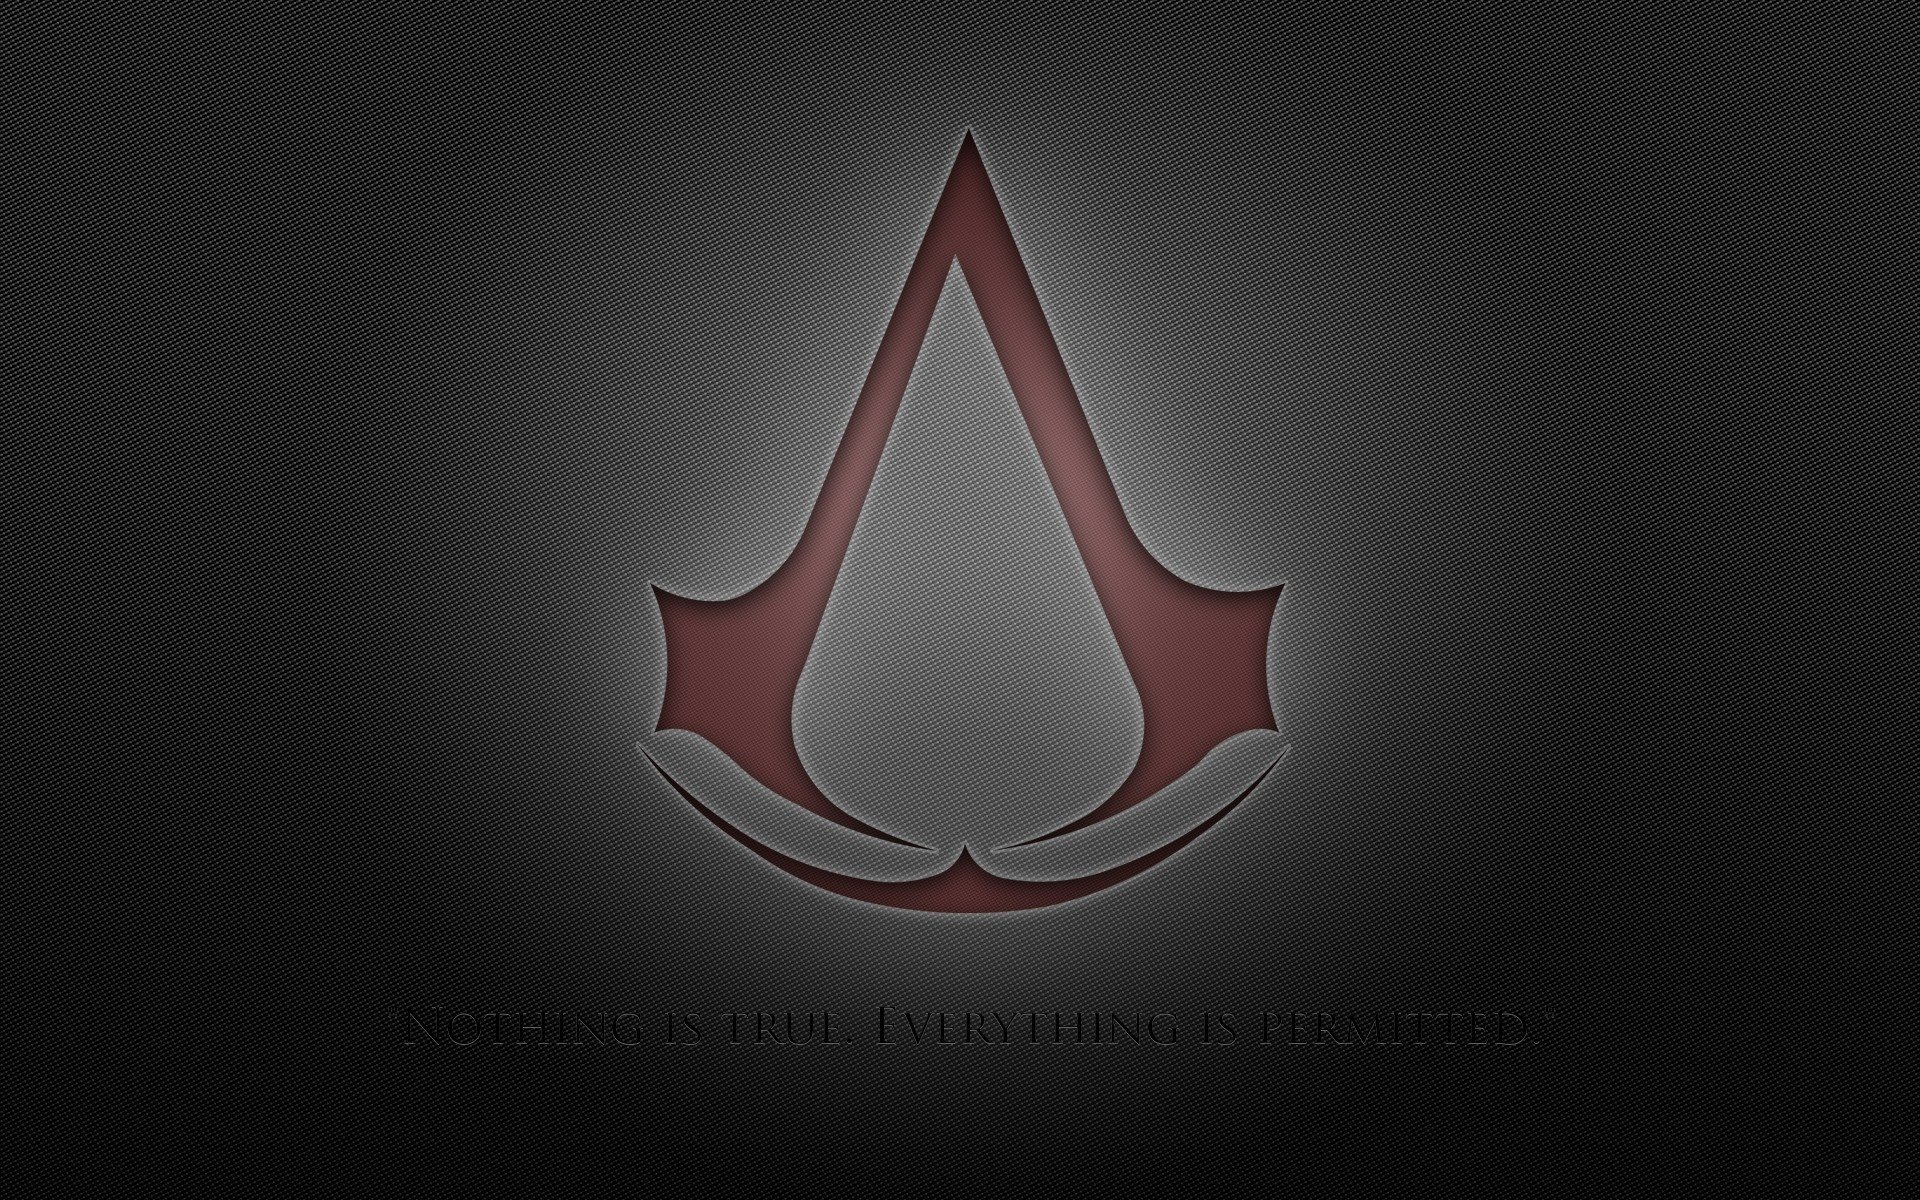 Assassin S Creed Hd Wallpaper Background Image 1920x1200 Id 576777 Wallpaper Abyss